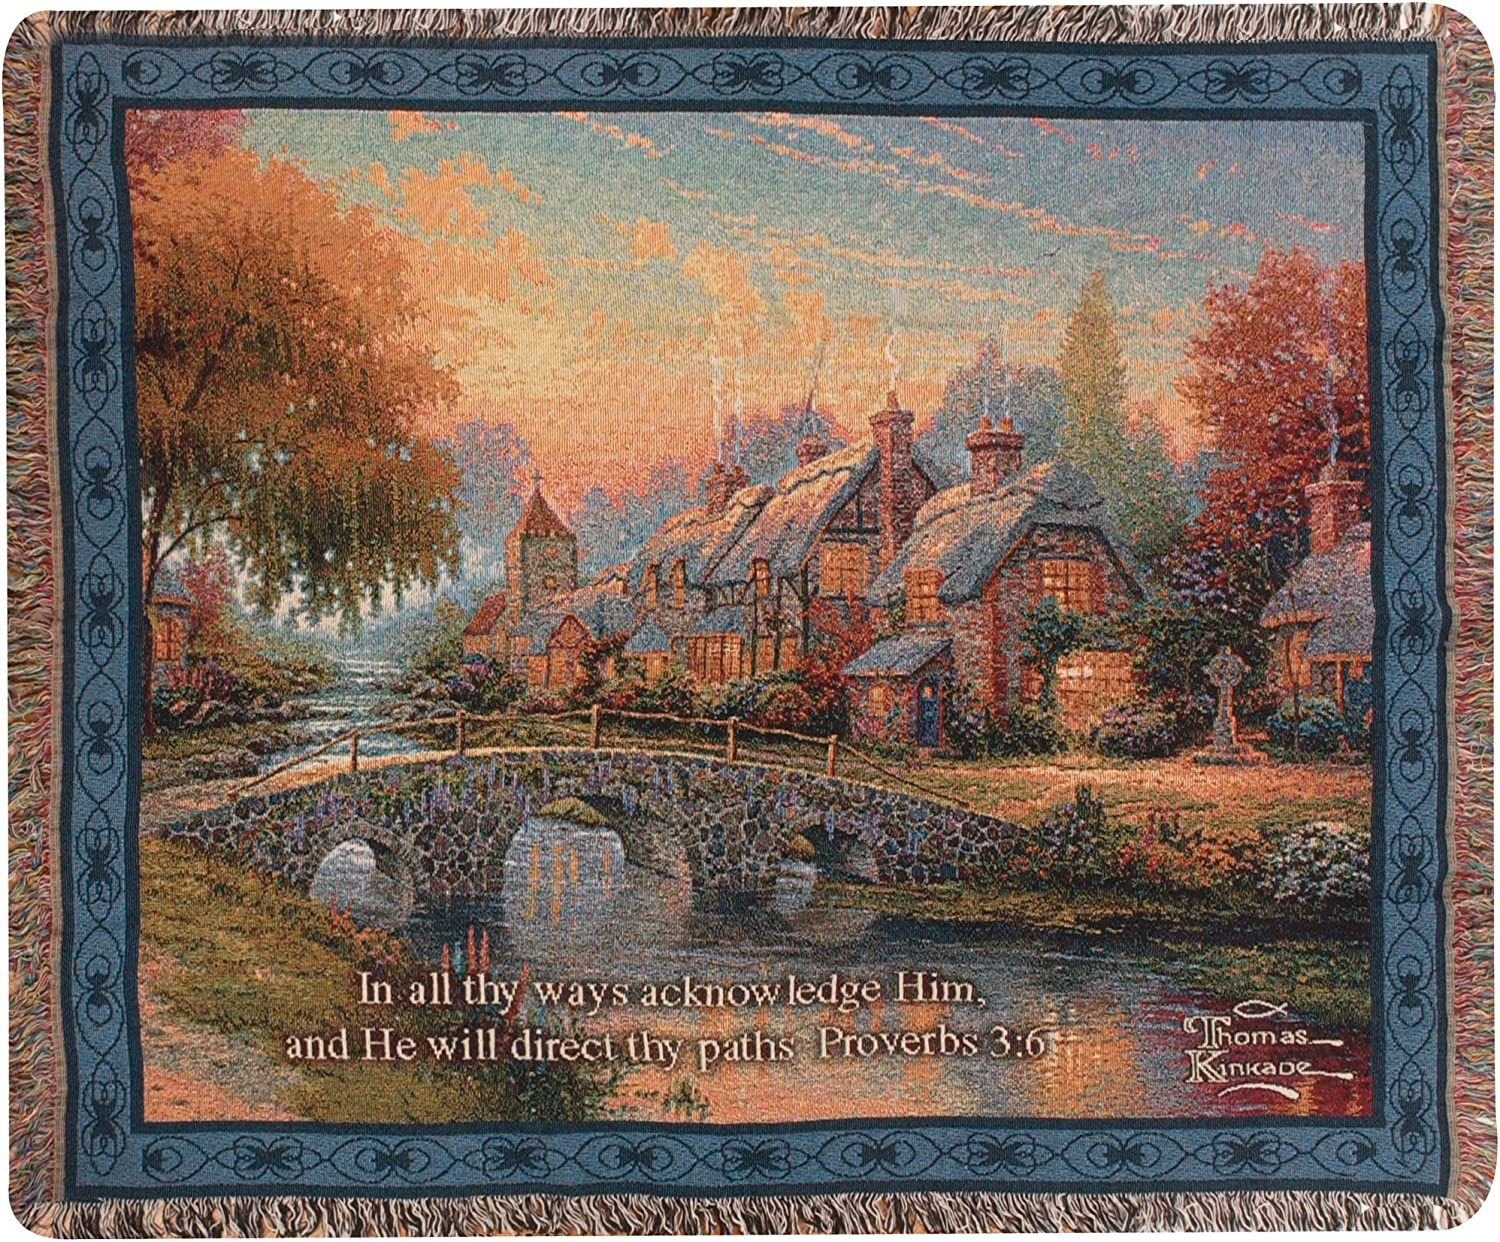 Manual Woodworker Manual Woodworkers /& Weavers Hope Multicolor Tapestry Throw